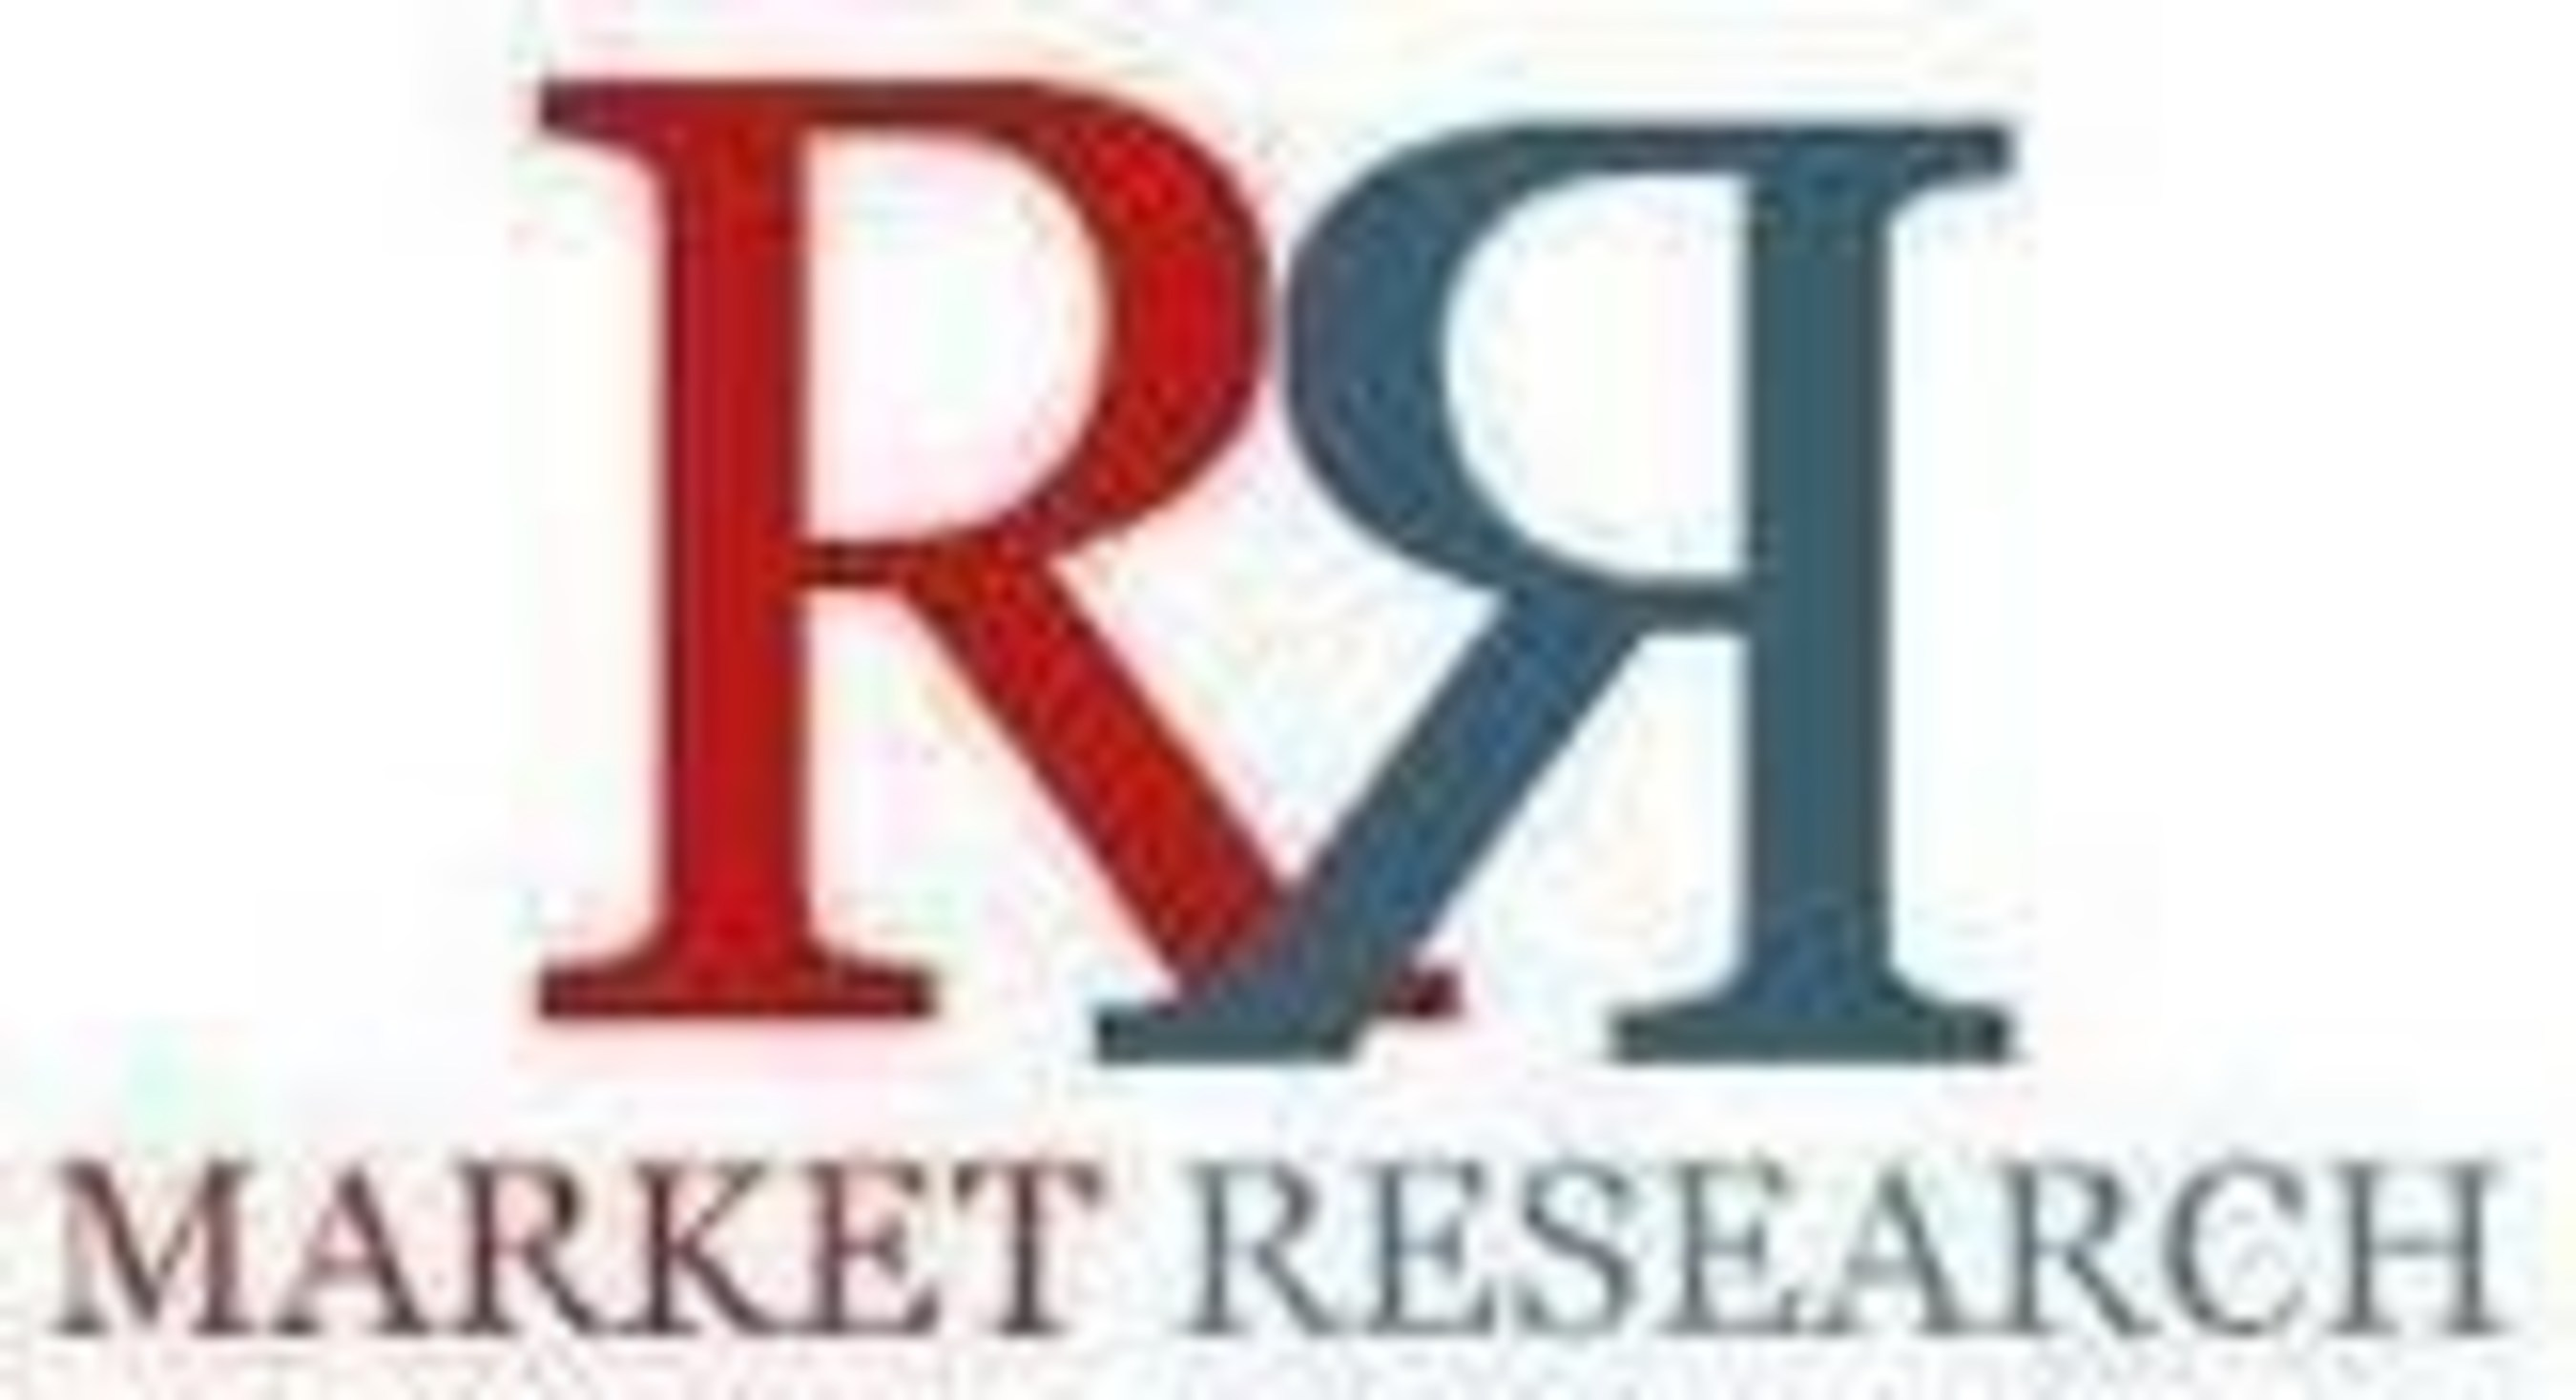 55%+ CAGR - Fog Computing Market Growth Potentially Worth $203.48 Million by 2022 Led by Smart Manufacturing Application